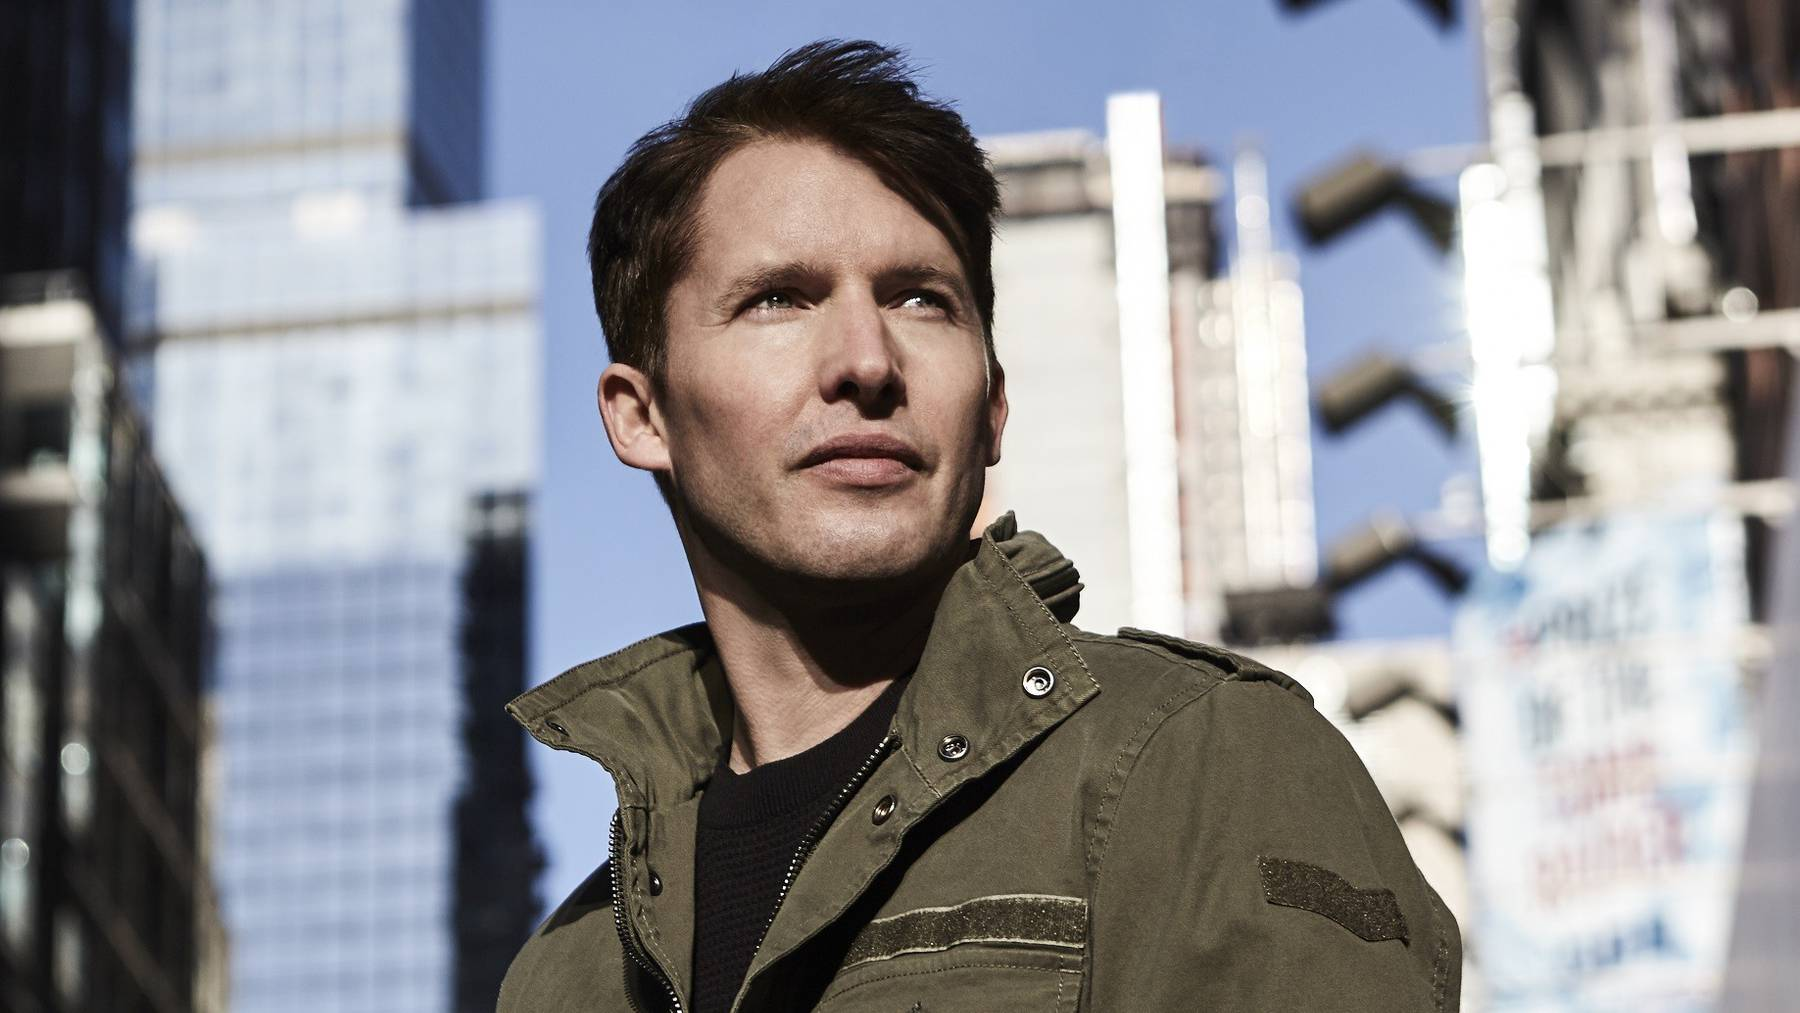 Beautiful! James Blunt kommt nach Zürich